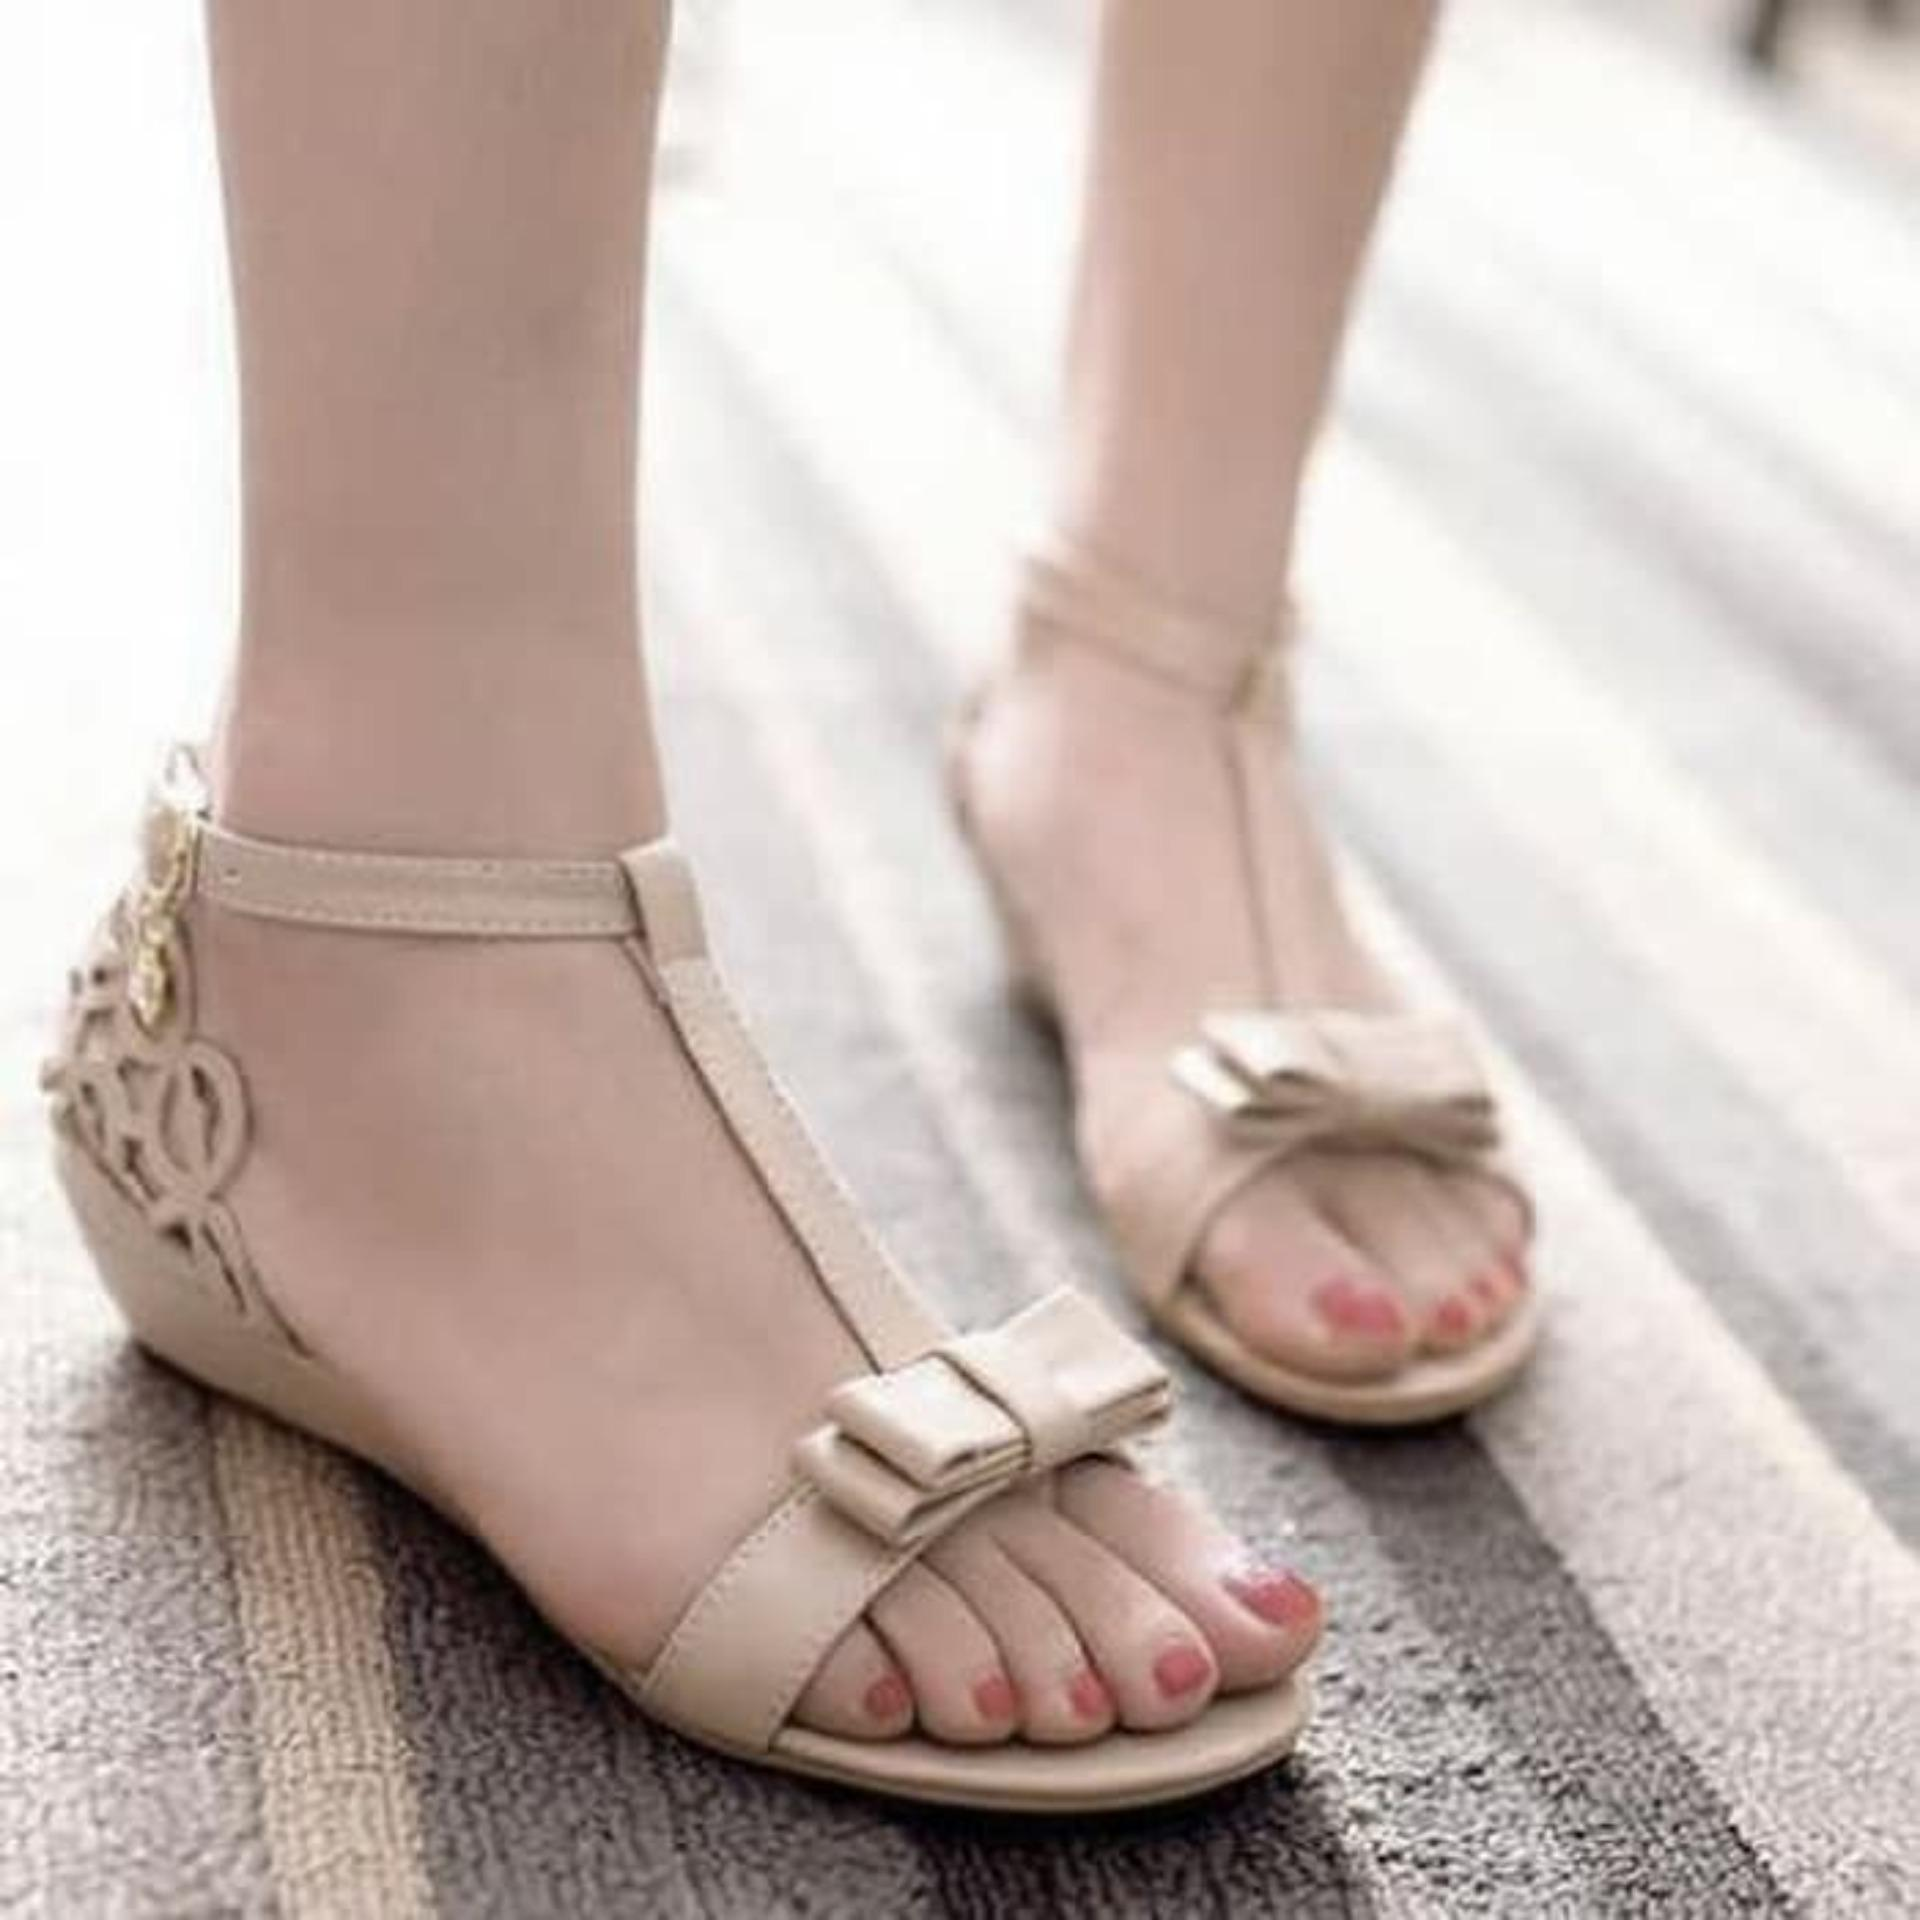 Buy Sell Cheapest Sandal Tali Kepang Best Quality Product Deals Sendal Flat Teplek Hitam Wanita Sdl61